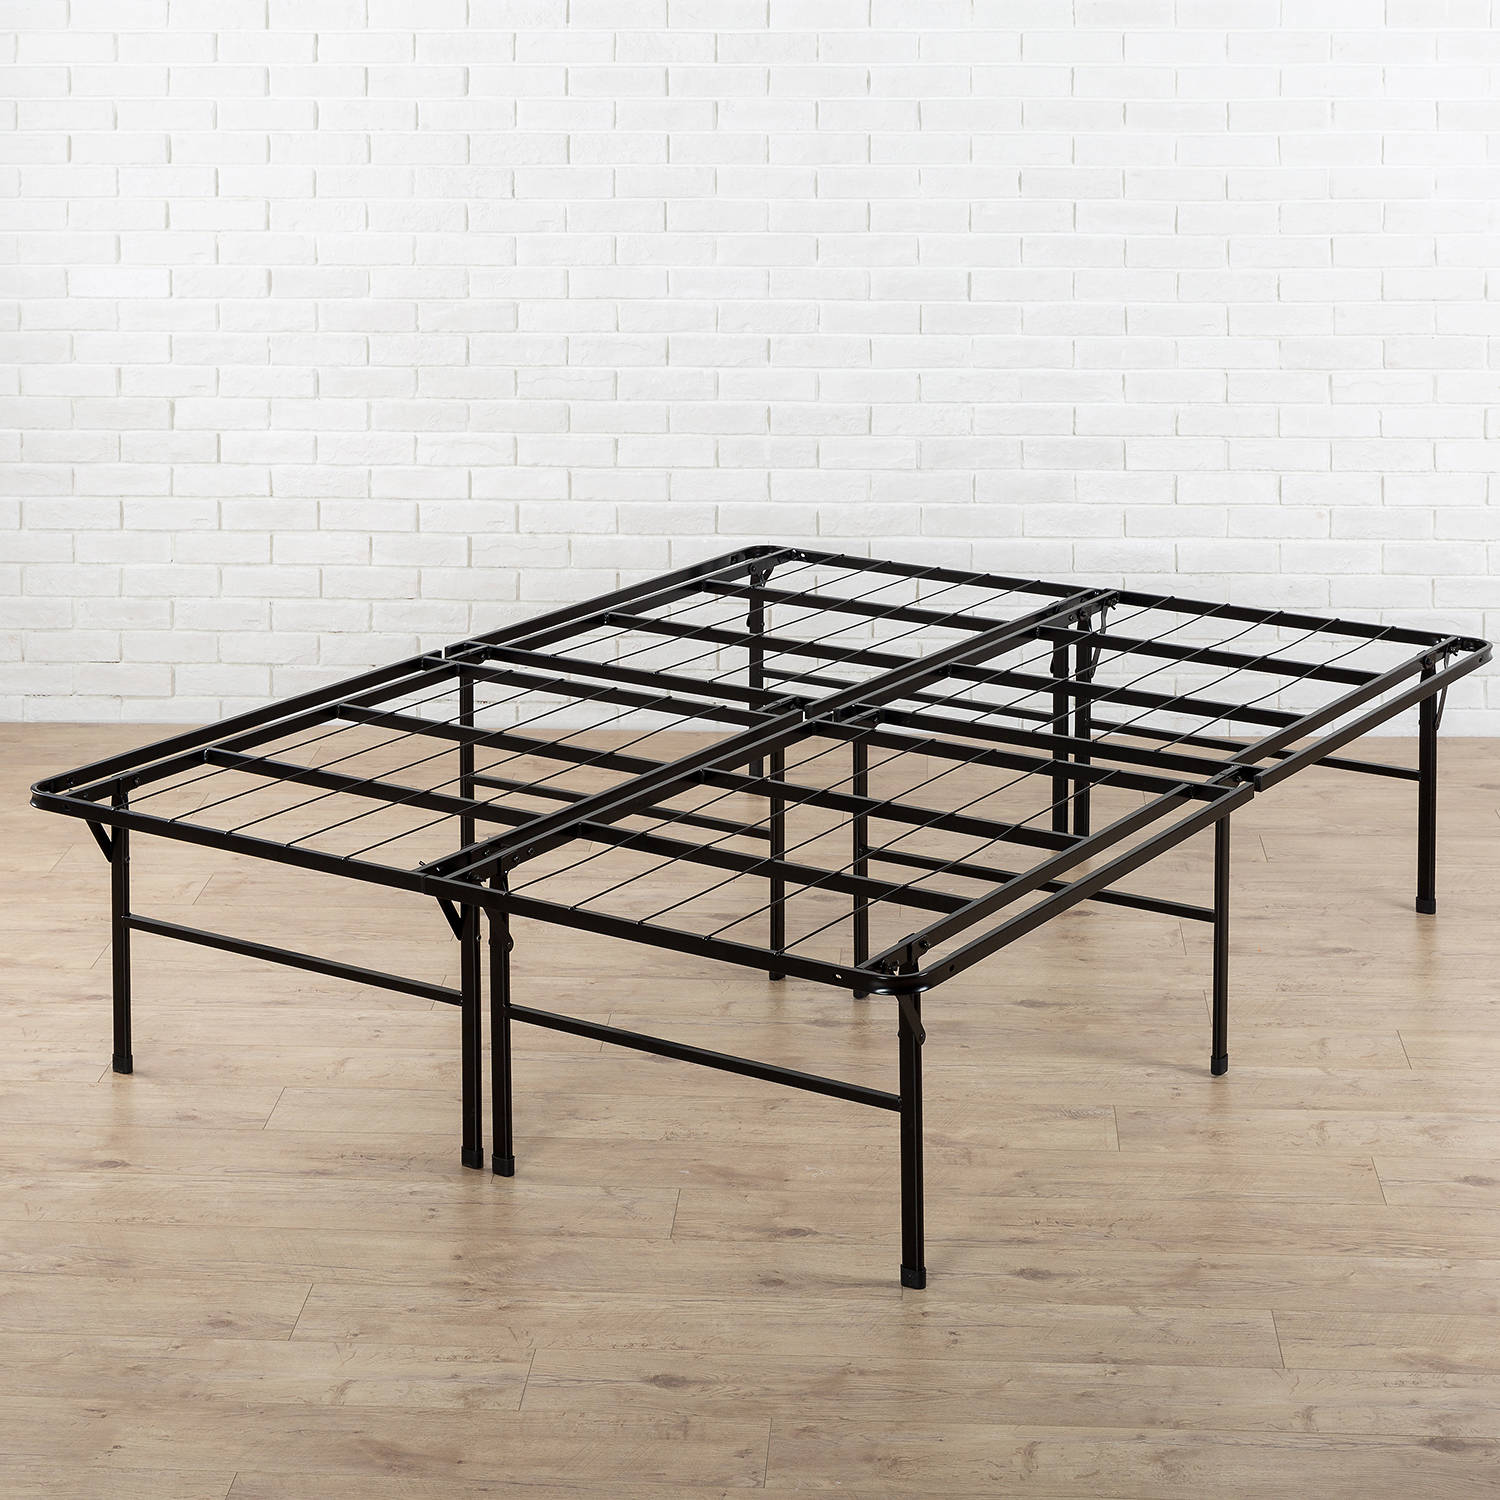 "Zinus 18"" High Profile Foldable Steel Smart Base Bed Frame with Under-Bed Storage, Easy No Tools Assembly, Multiple Sizes"